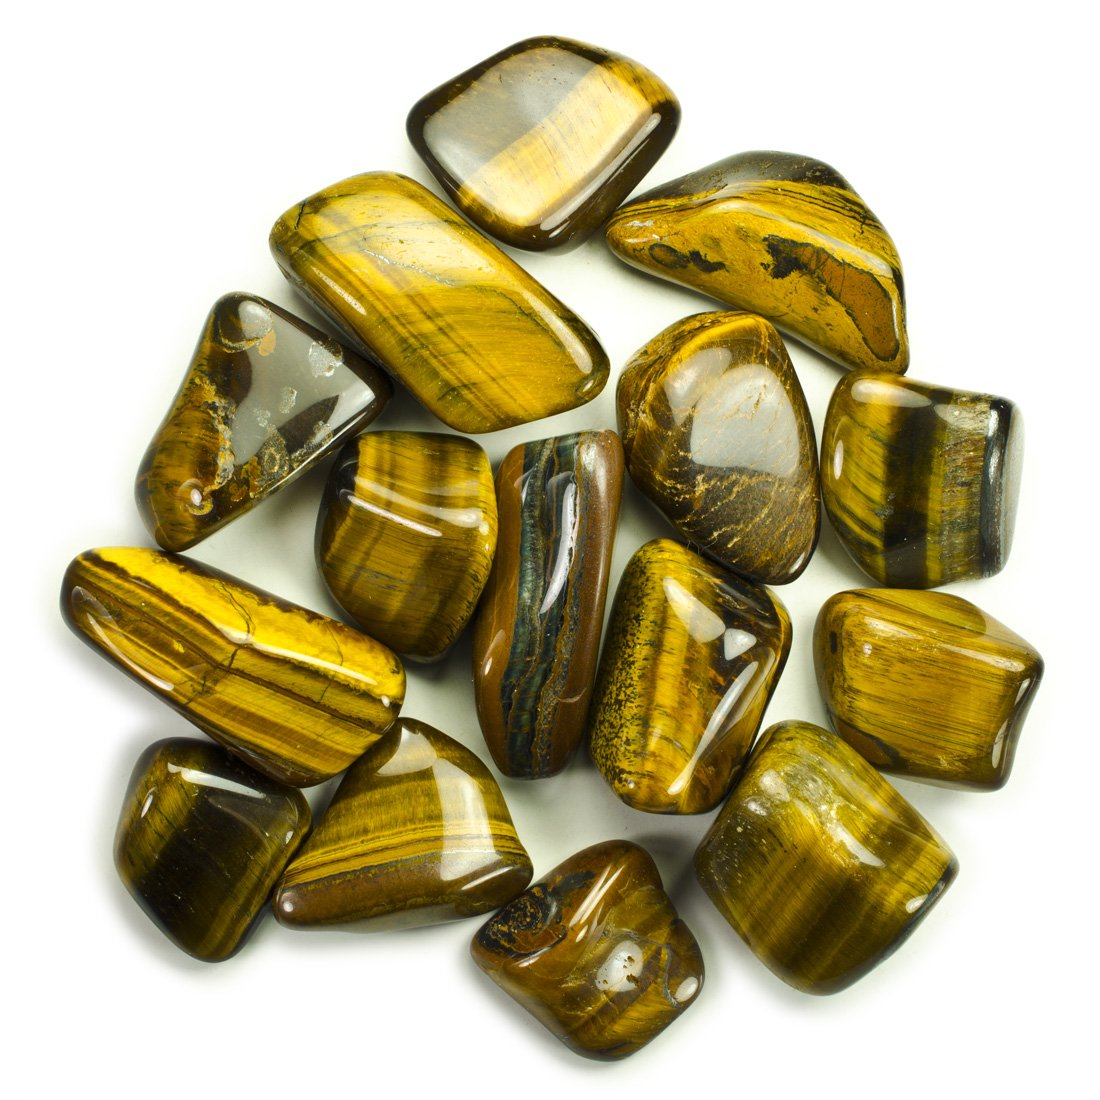 Hypnotic Gems Materials: 18 lbs Bulk Tumbled Gold Tiger Eye Stones from Africa - Natural Polished Gemstone Supplies for Wicca, Reiki, and Energy Crystal HealingWholesale Lot